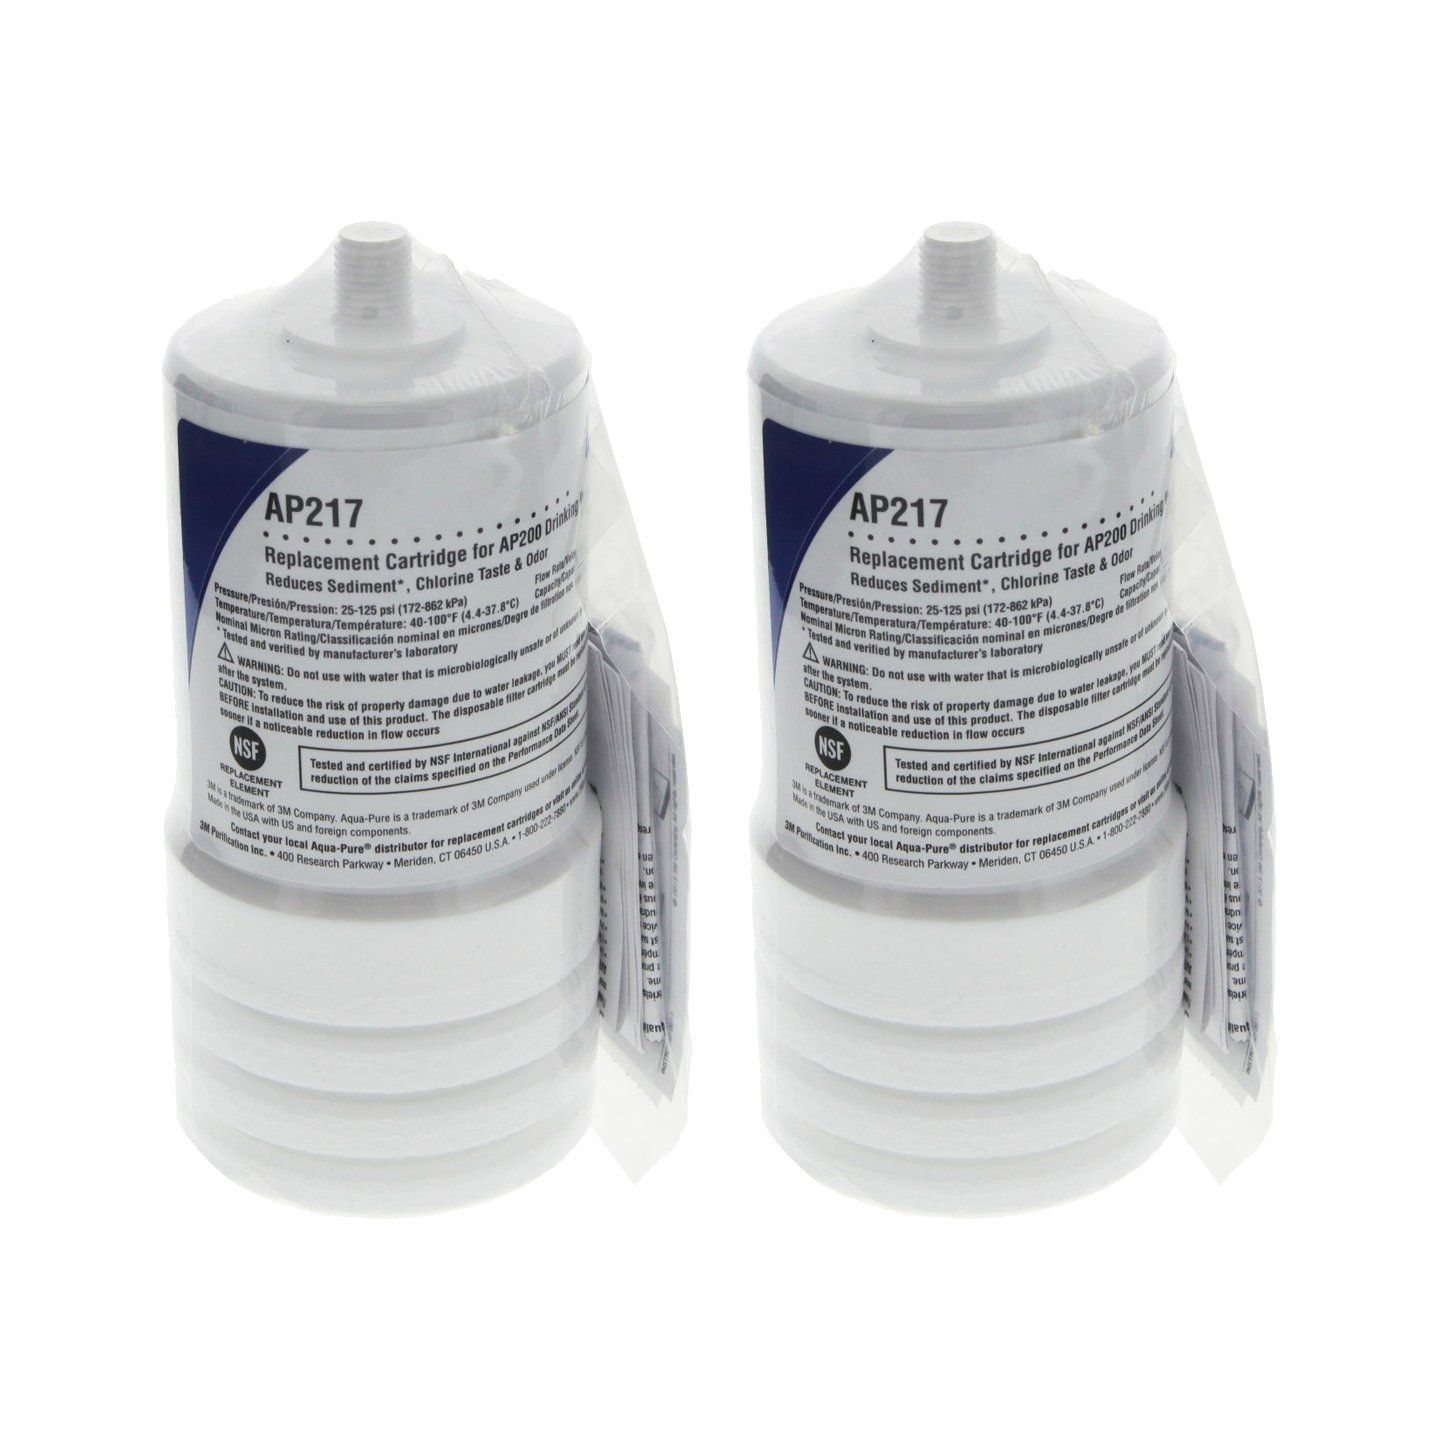 Aquapure Ap217 4629002 Under Sink Replacement Filter Cartridge Pack Of 2 For More Information Visit Image L Sink Replacement Replacement Filter Under Sink